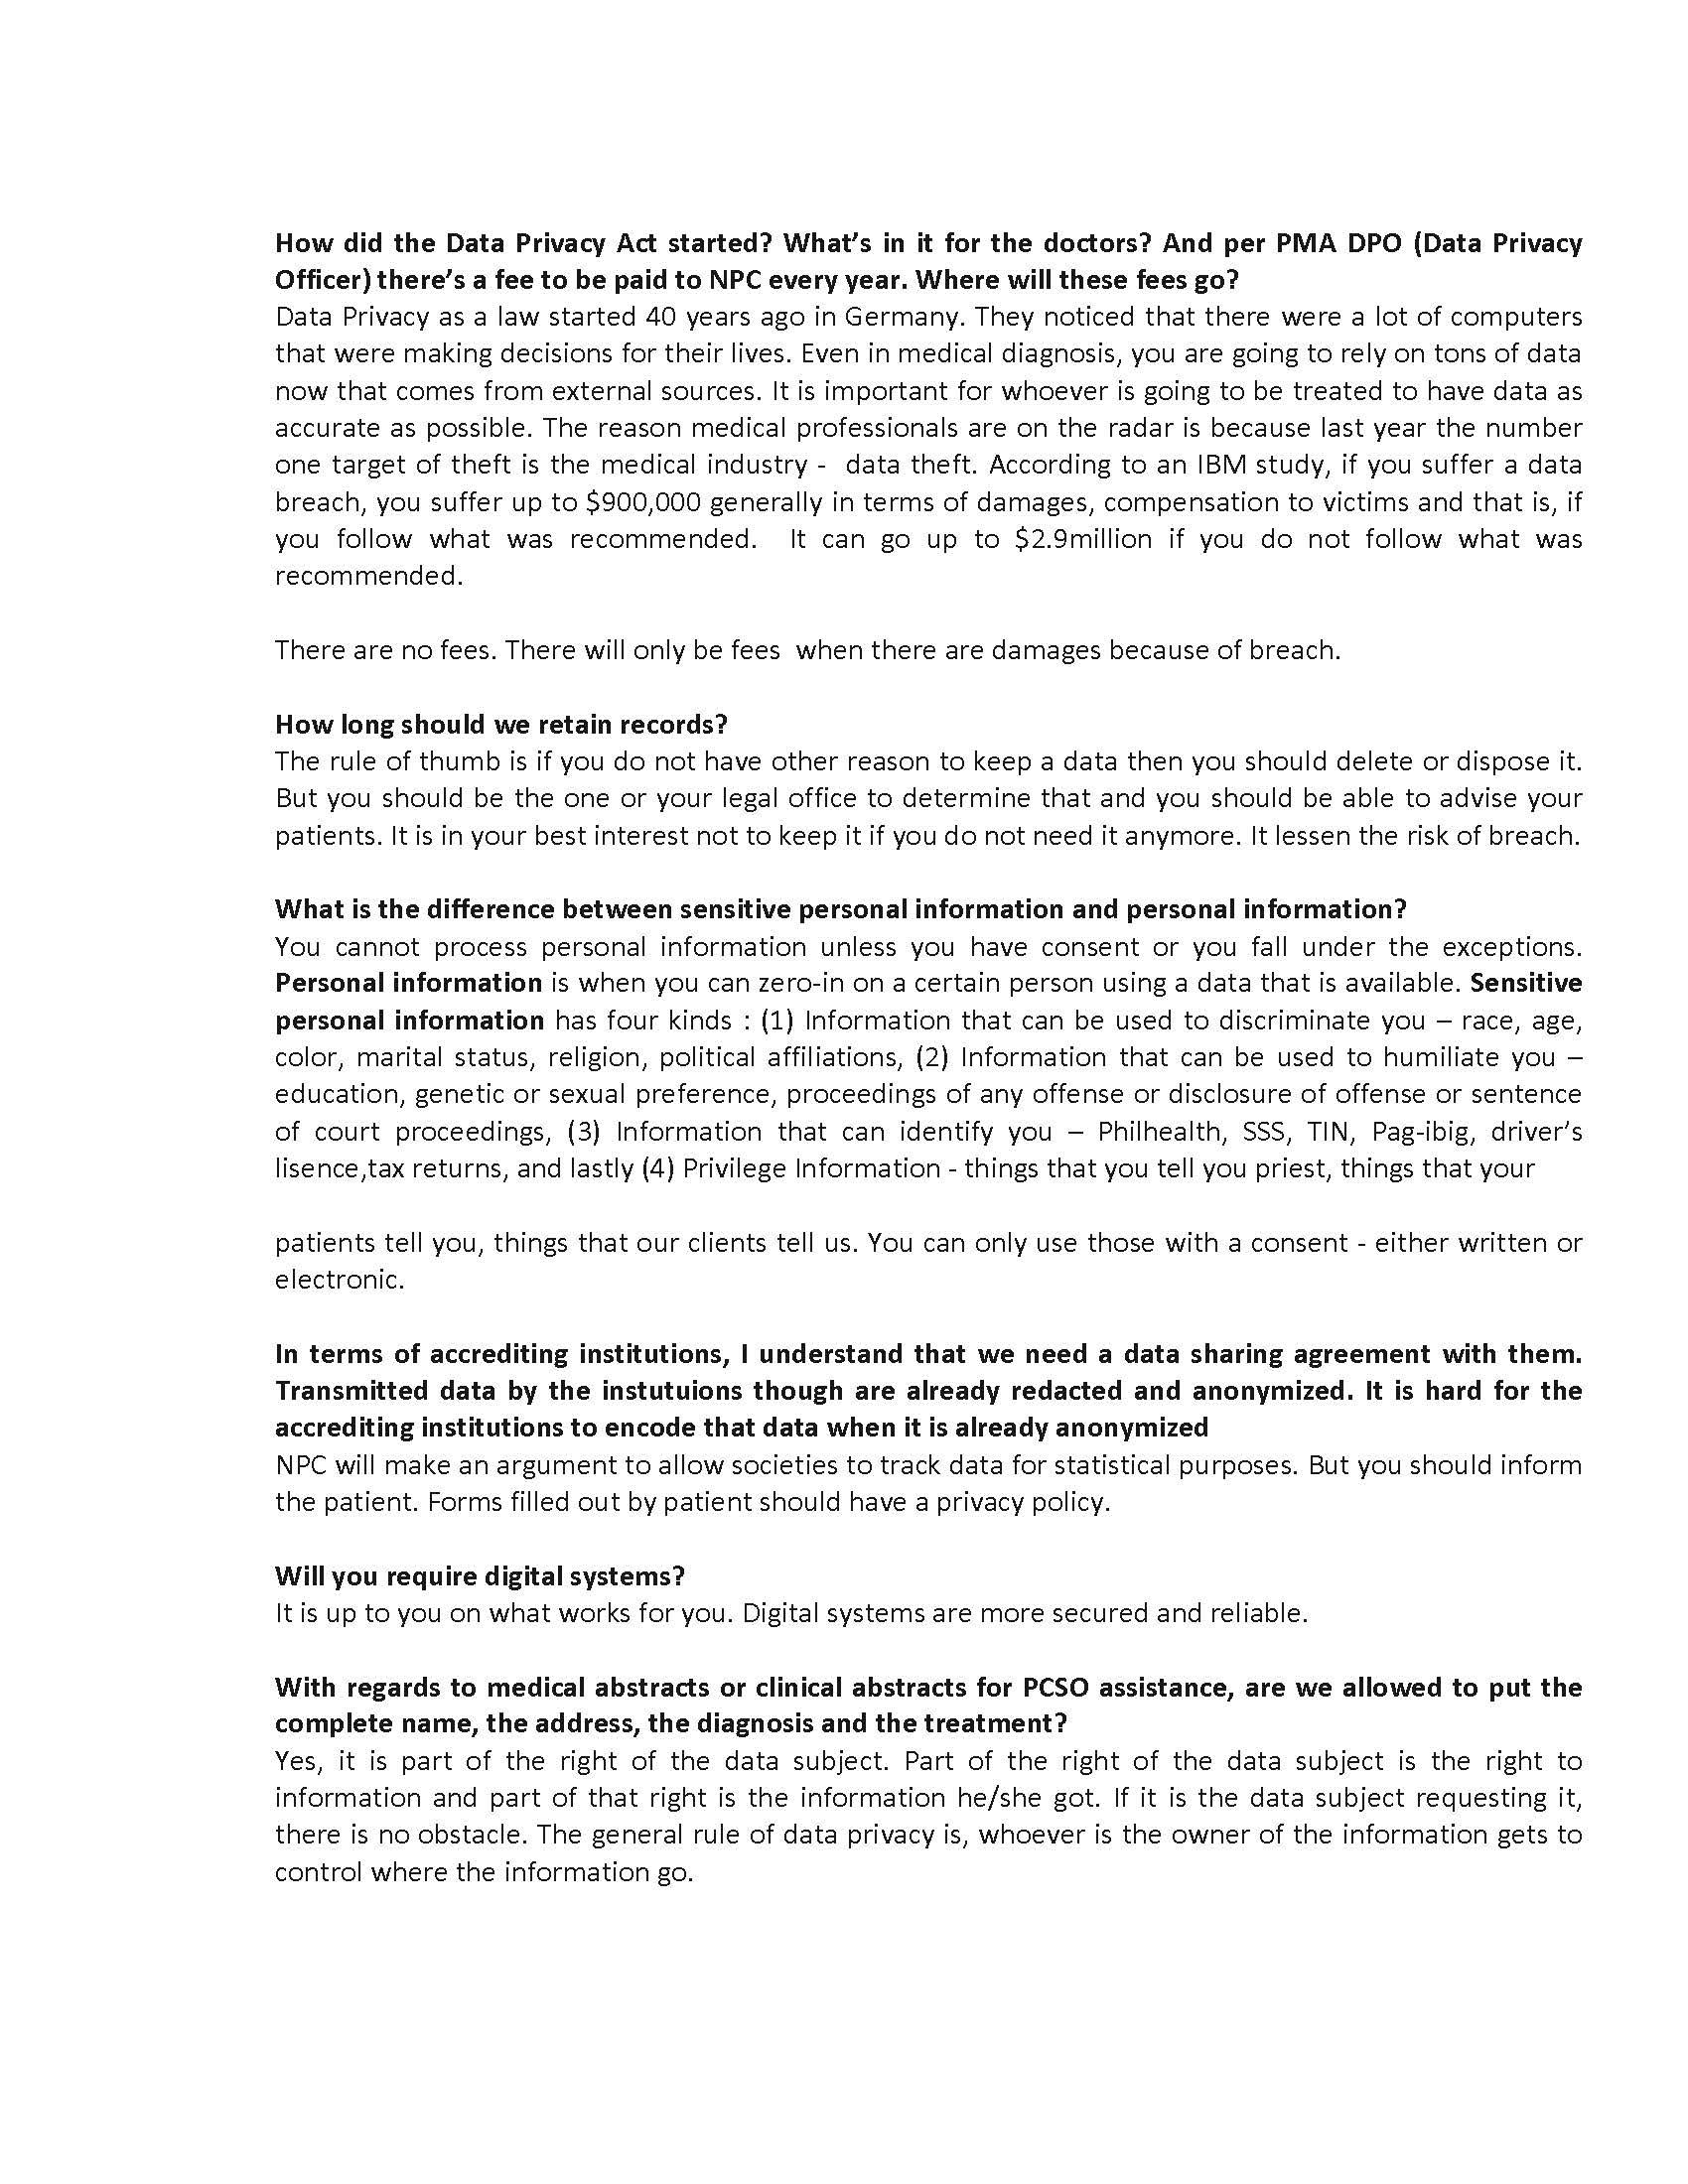 QnA Forum on Data Privacy 1 Page 3